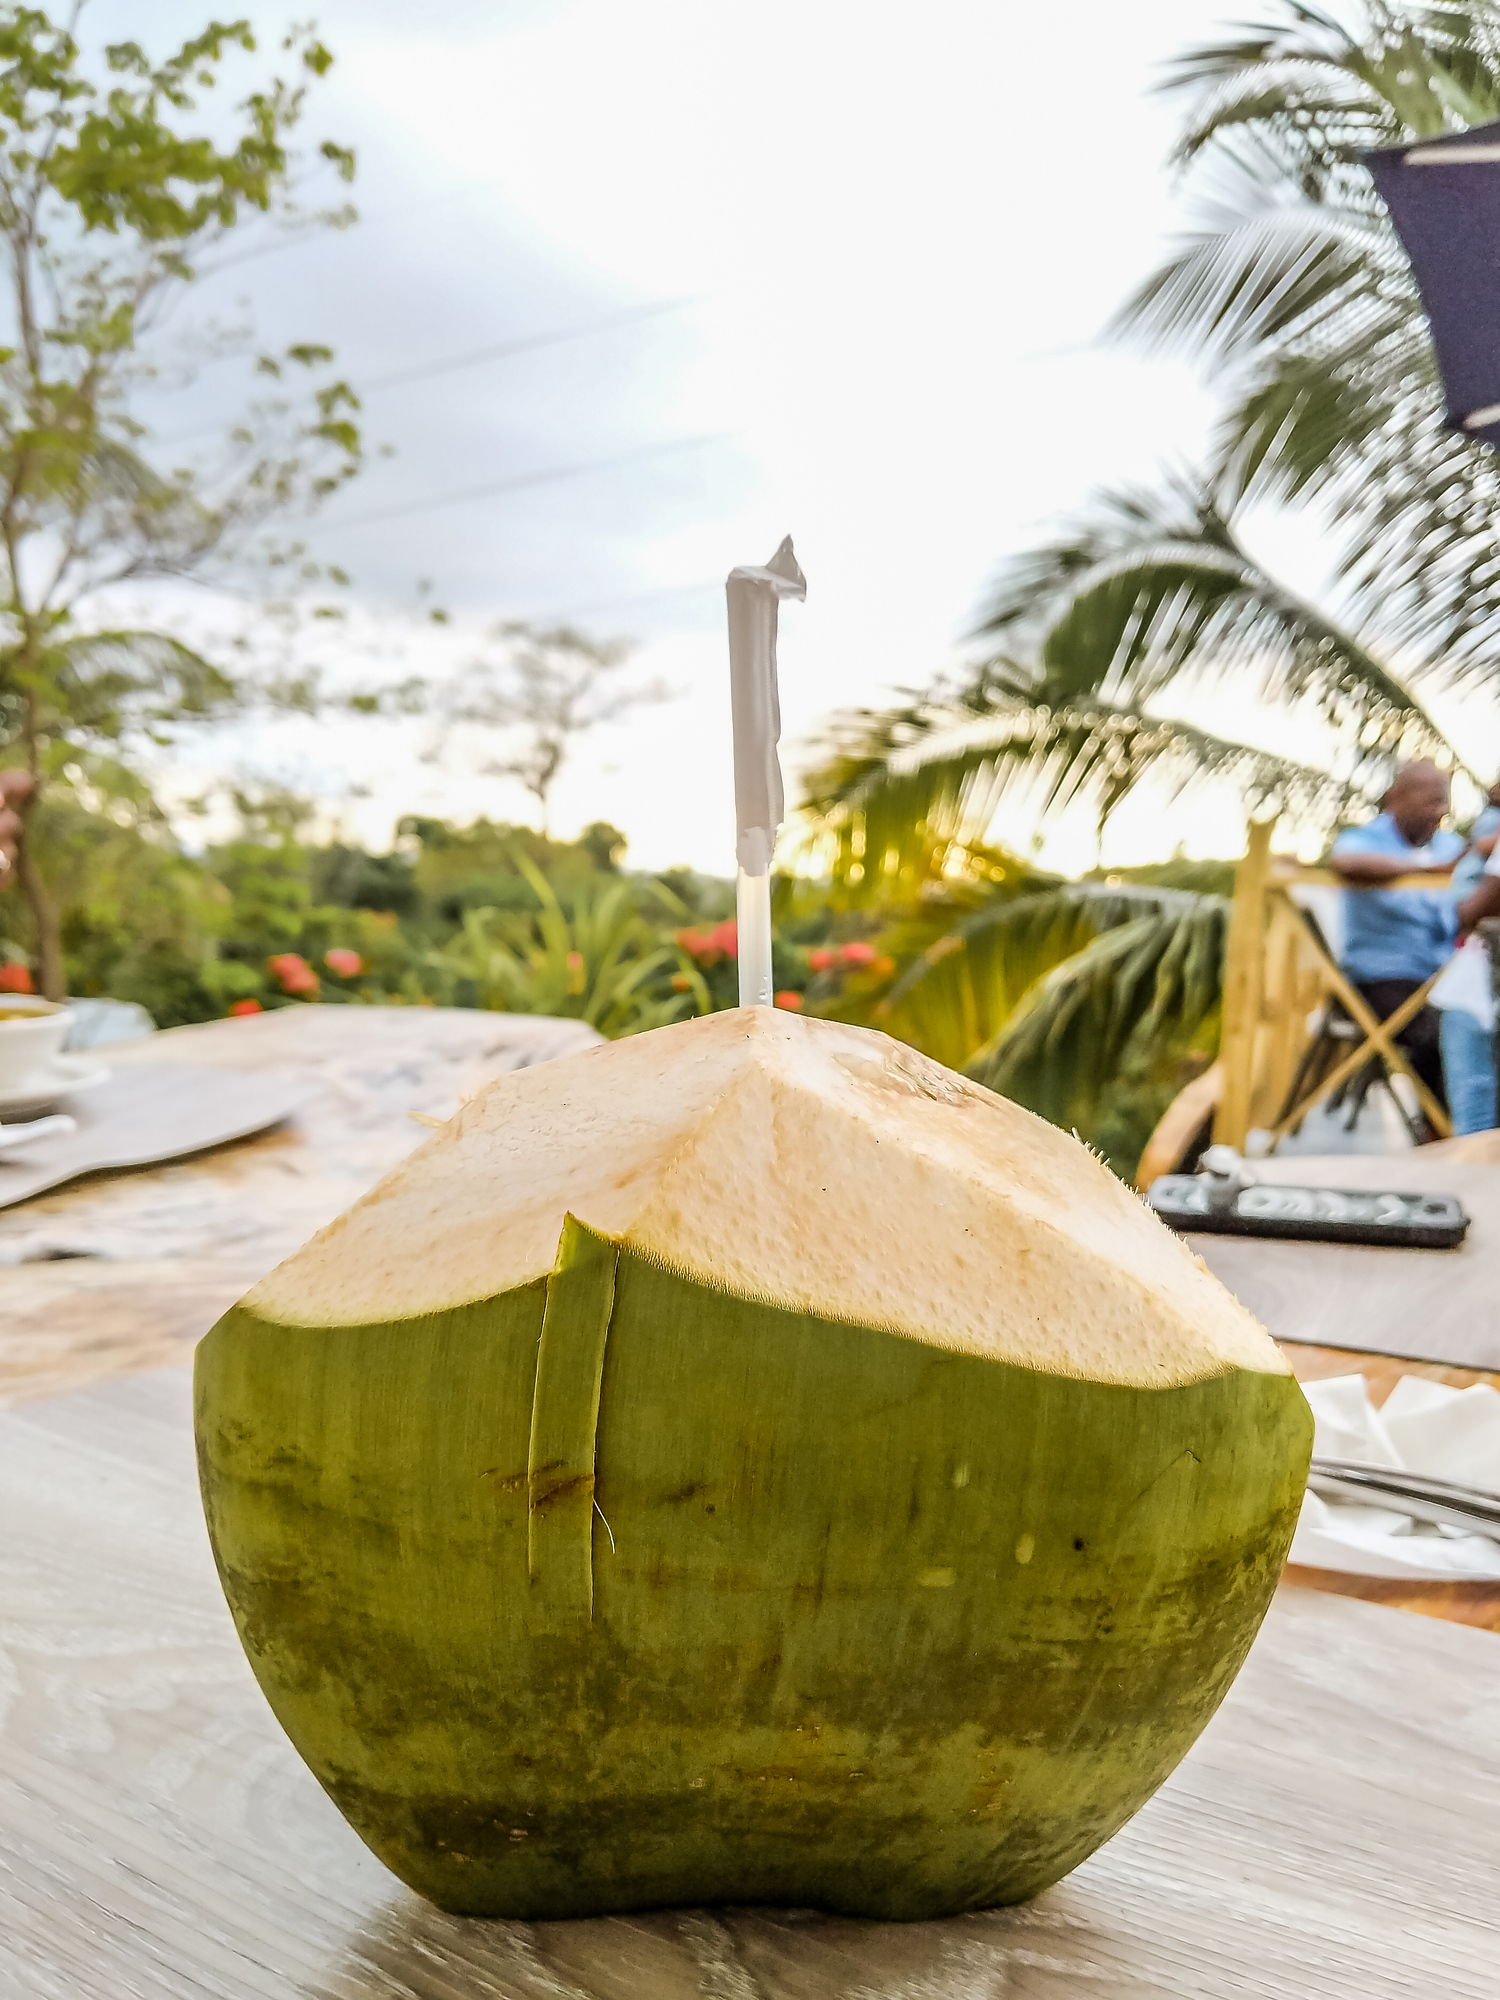 Coconut water is just one traditional Jamaican food you need to try. The ultimate guide for what to eat in Jamaica, our best picks for 27 dishes, 6 desserts and 12 drinks you won't want to leave the island without trying.